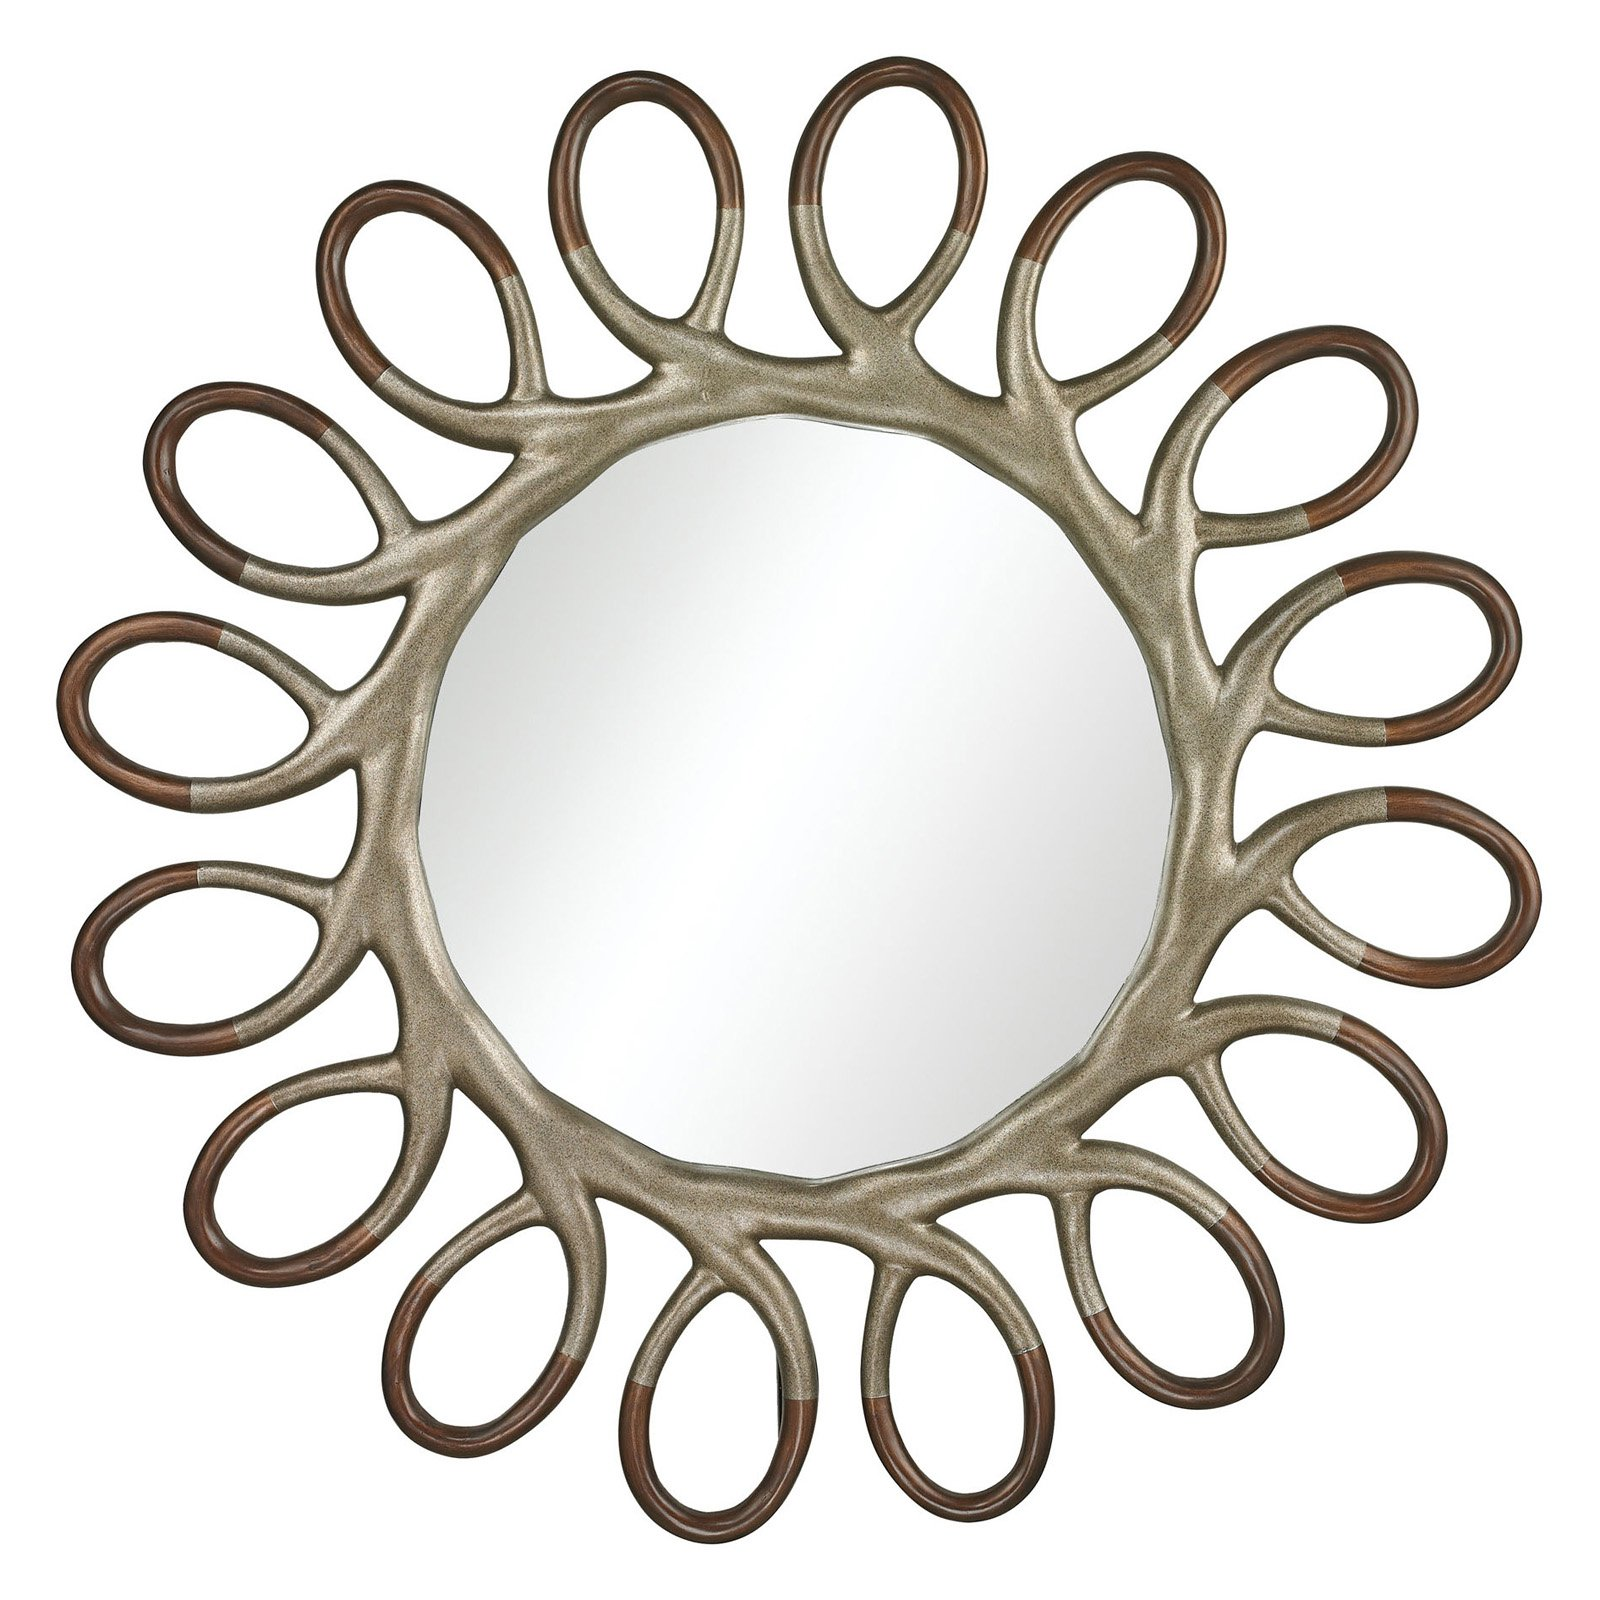 Sterling Clement Wall Mirror - 46 diam. in.